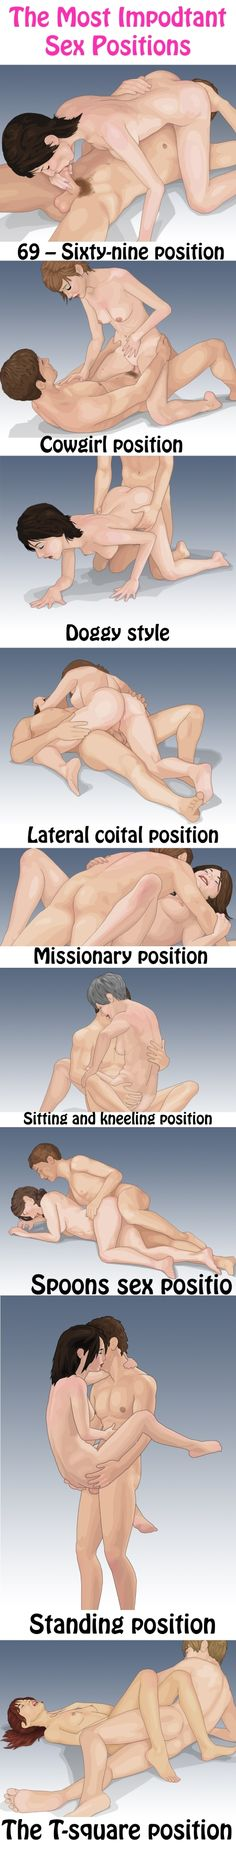 The Most Important Sex Positions